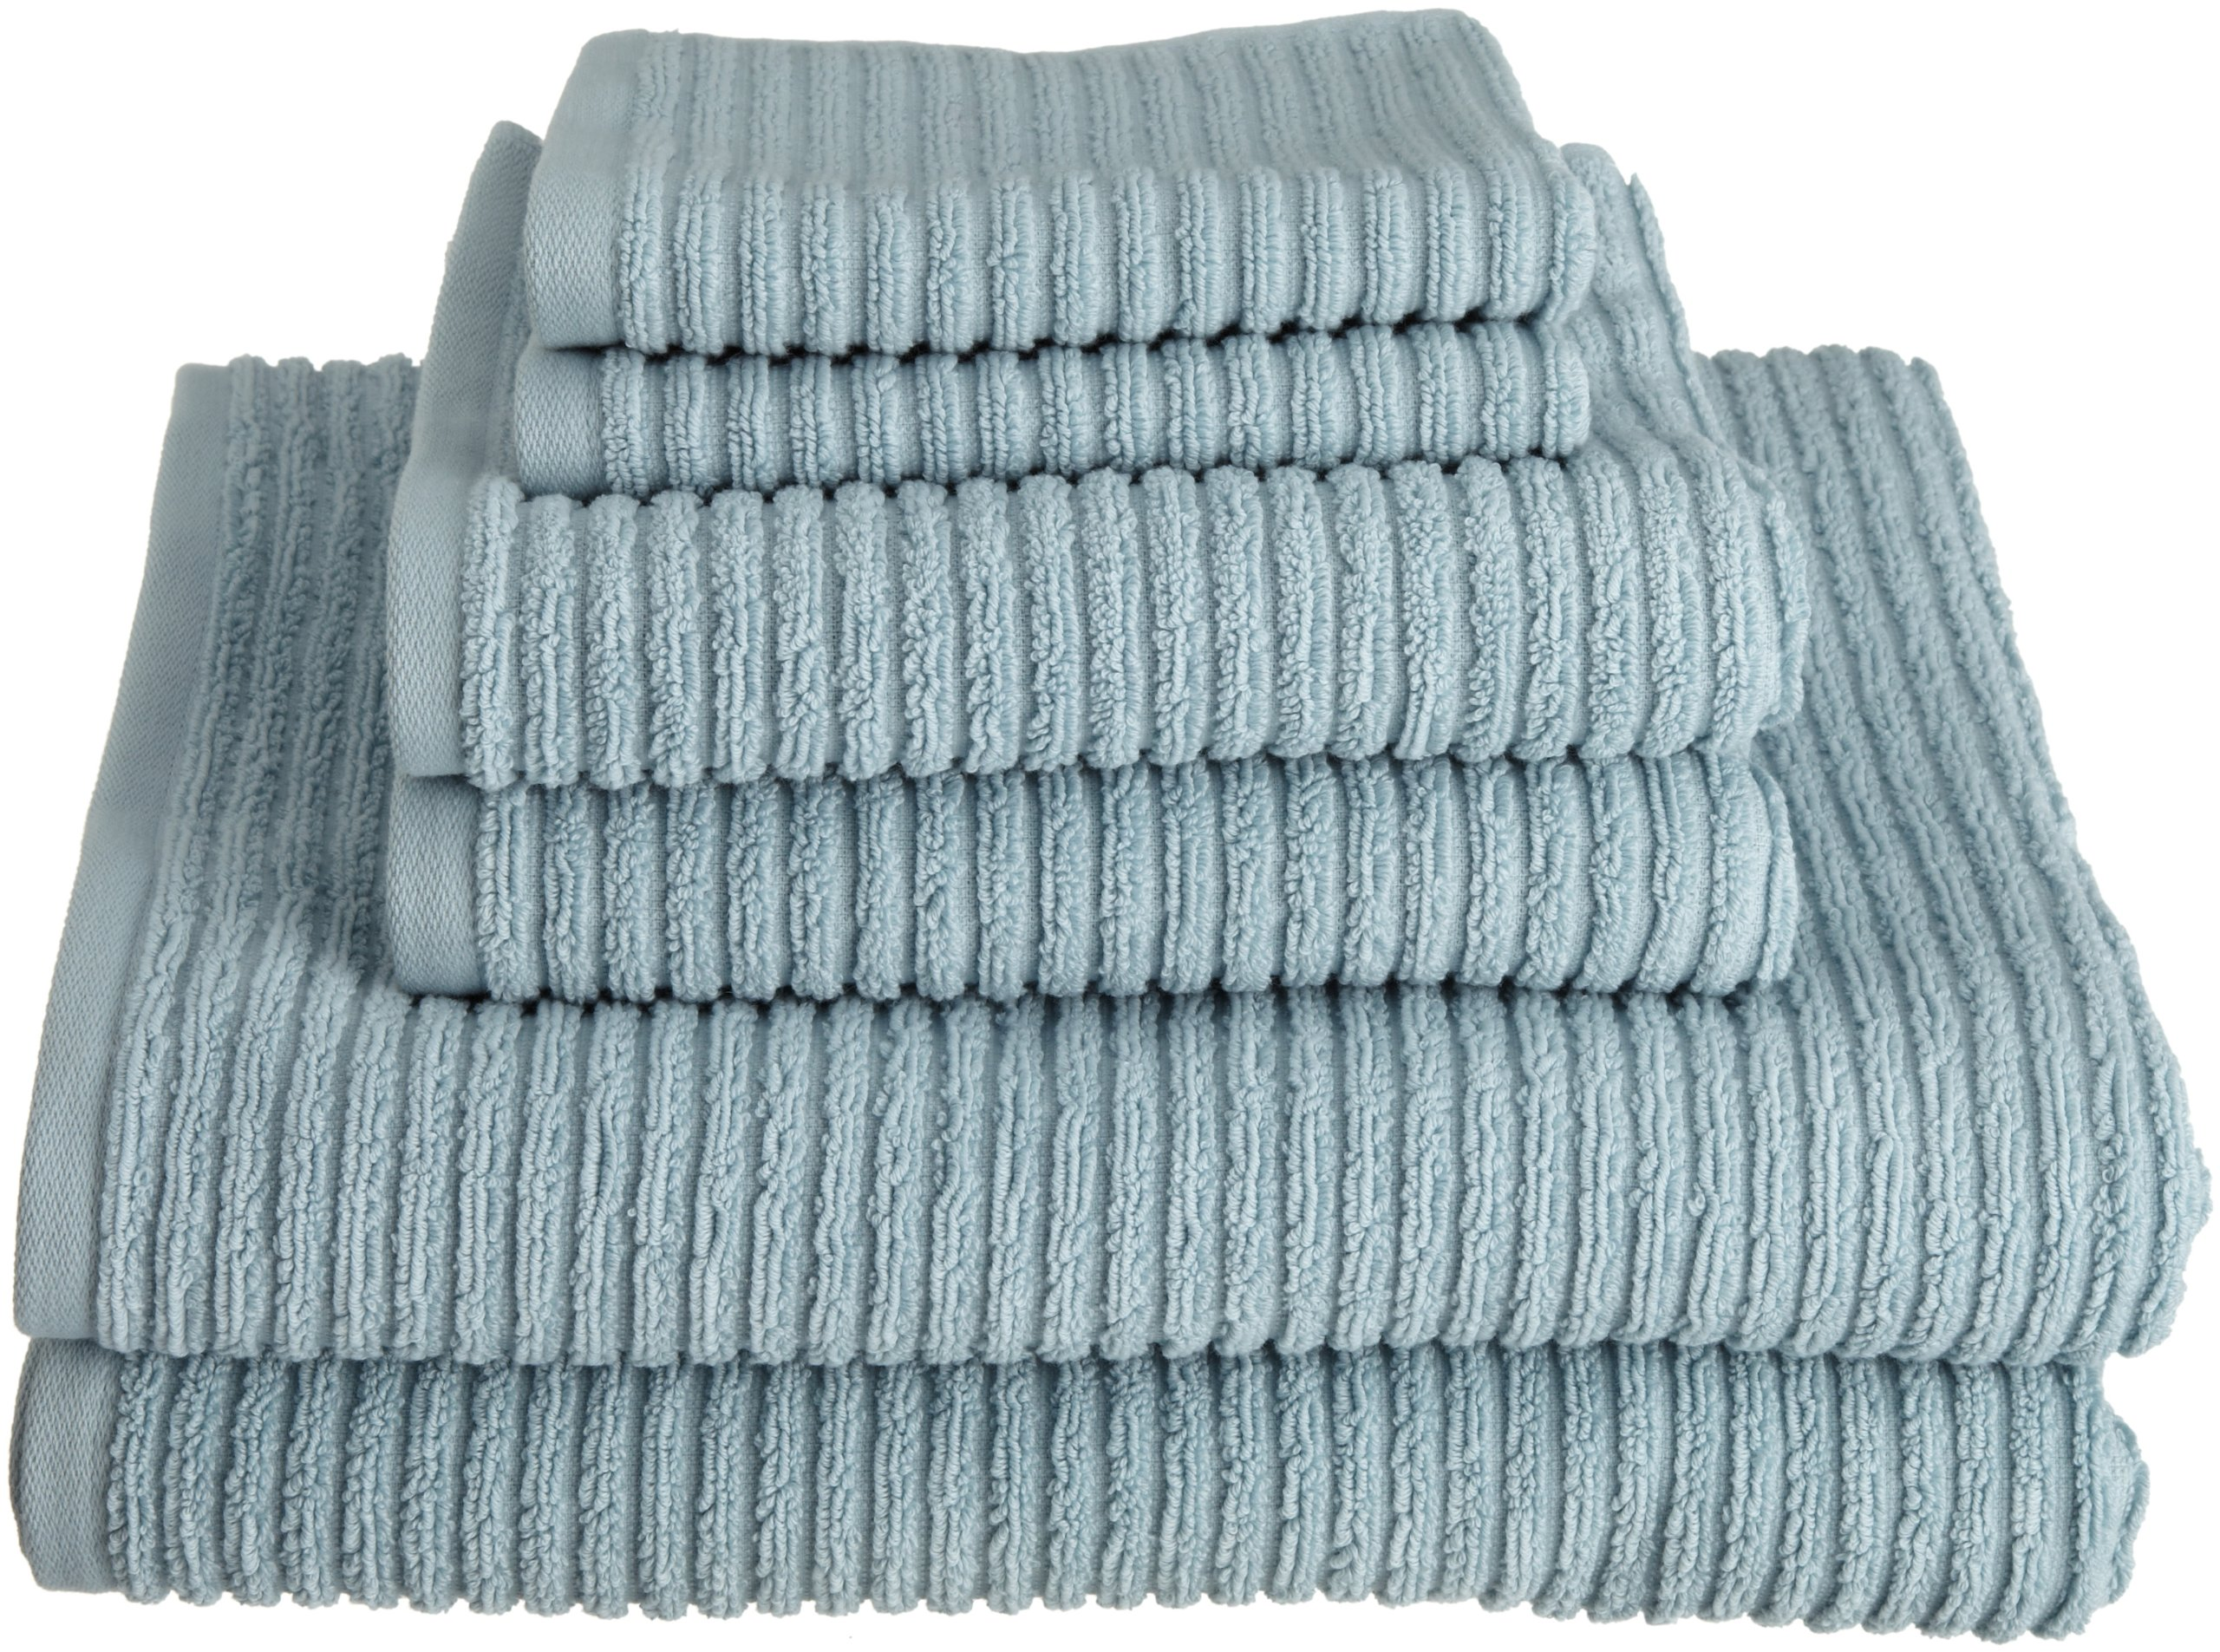 Kassatex 100-Percent Combed Extra Long Staple Turkish Cotton from our Urbane Collection 6-Piece Solid Towel Set, Spa Blue